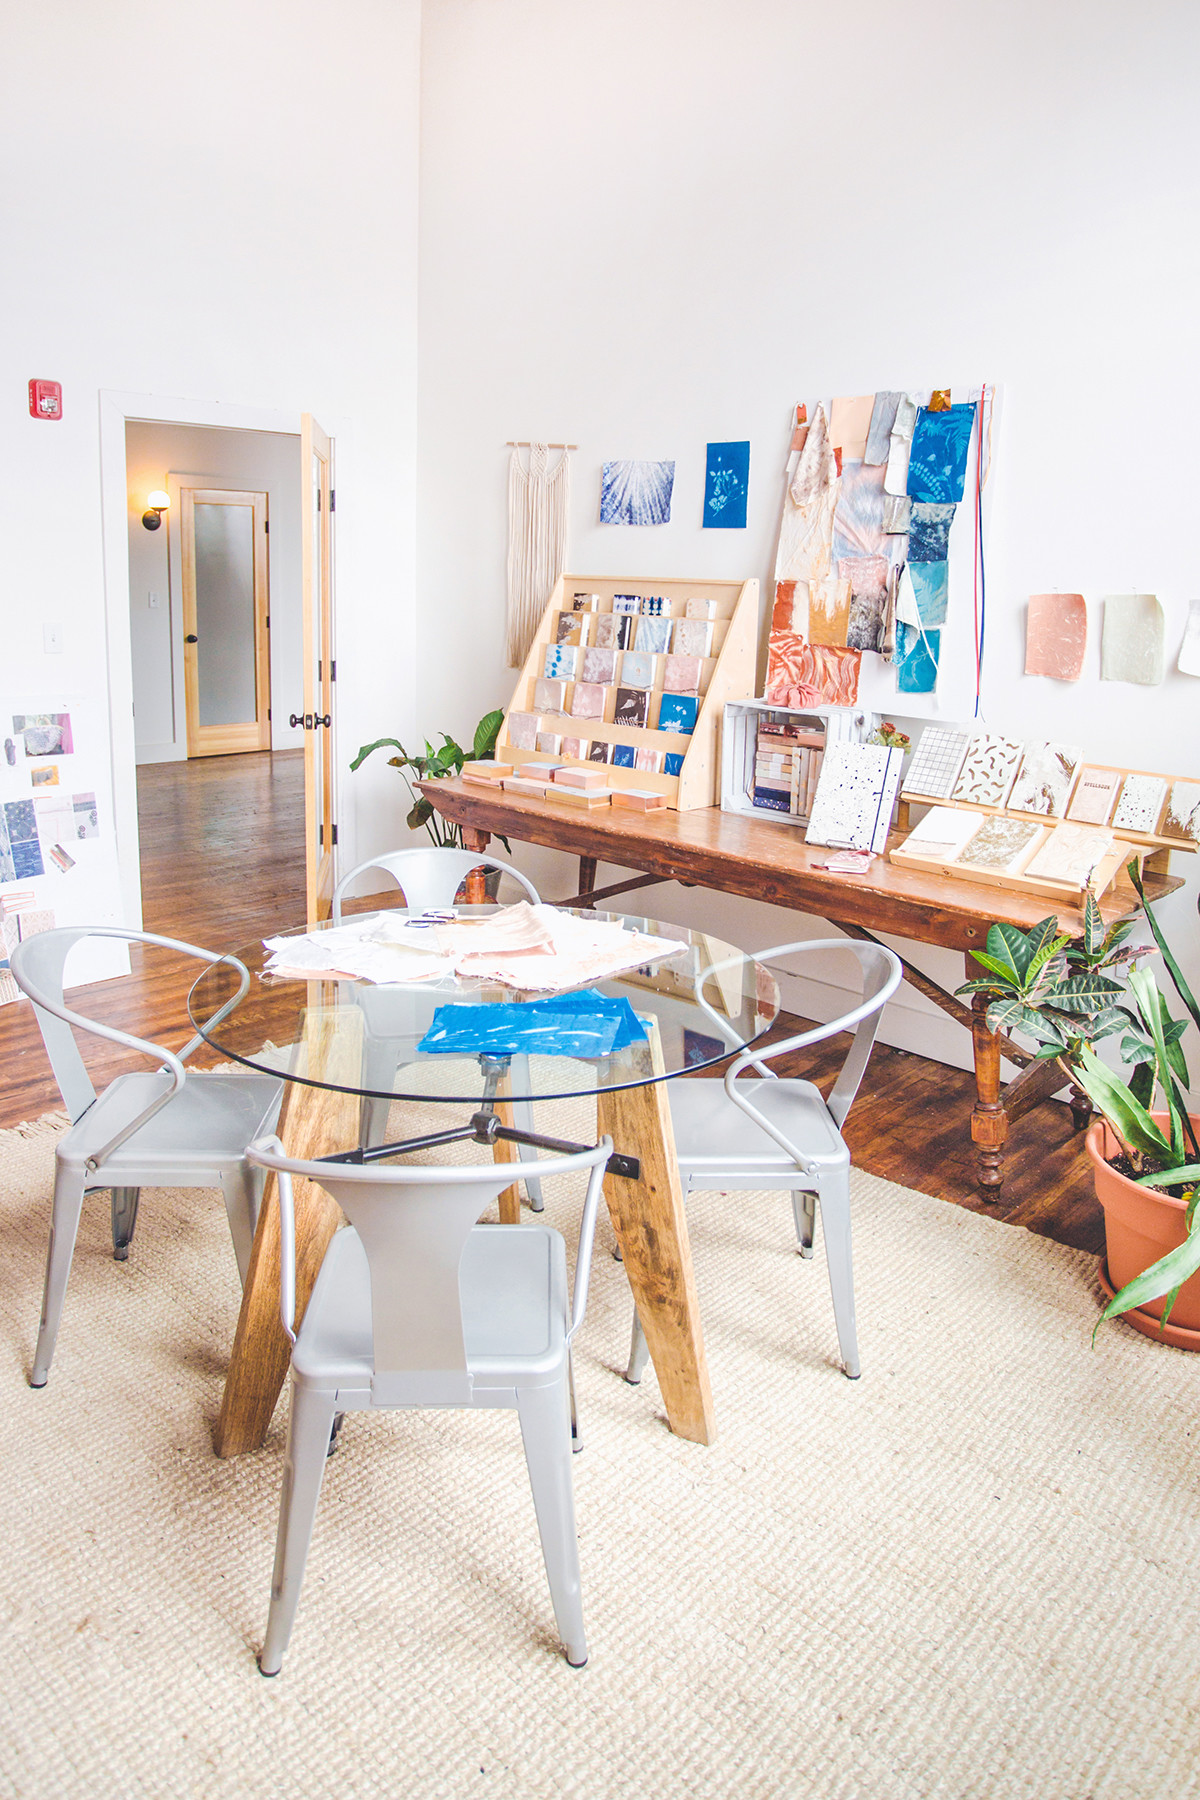 Take A Look Inside Printfresh's Historical Philadelphia Studio